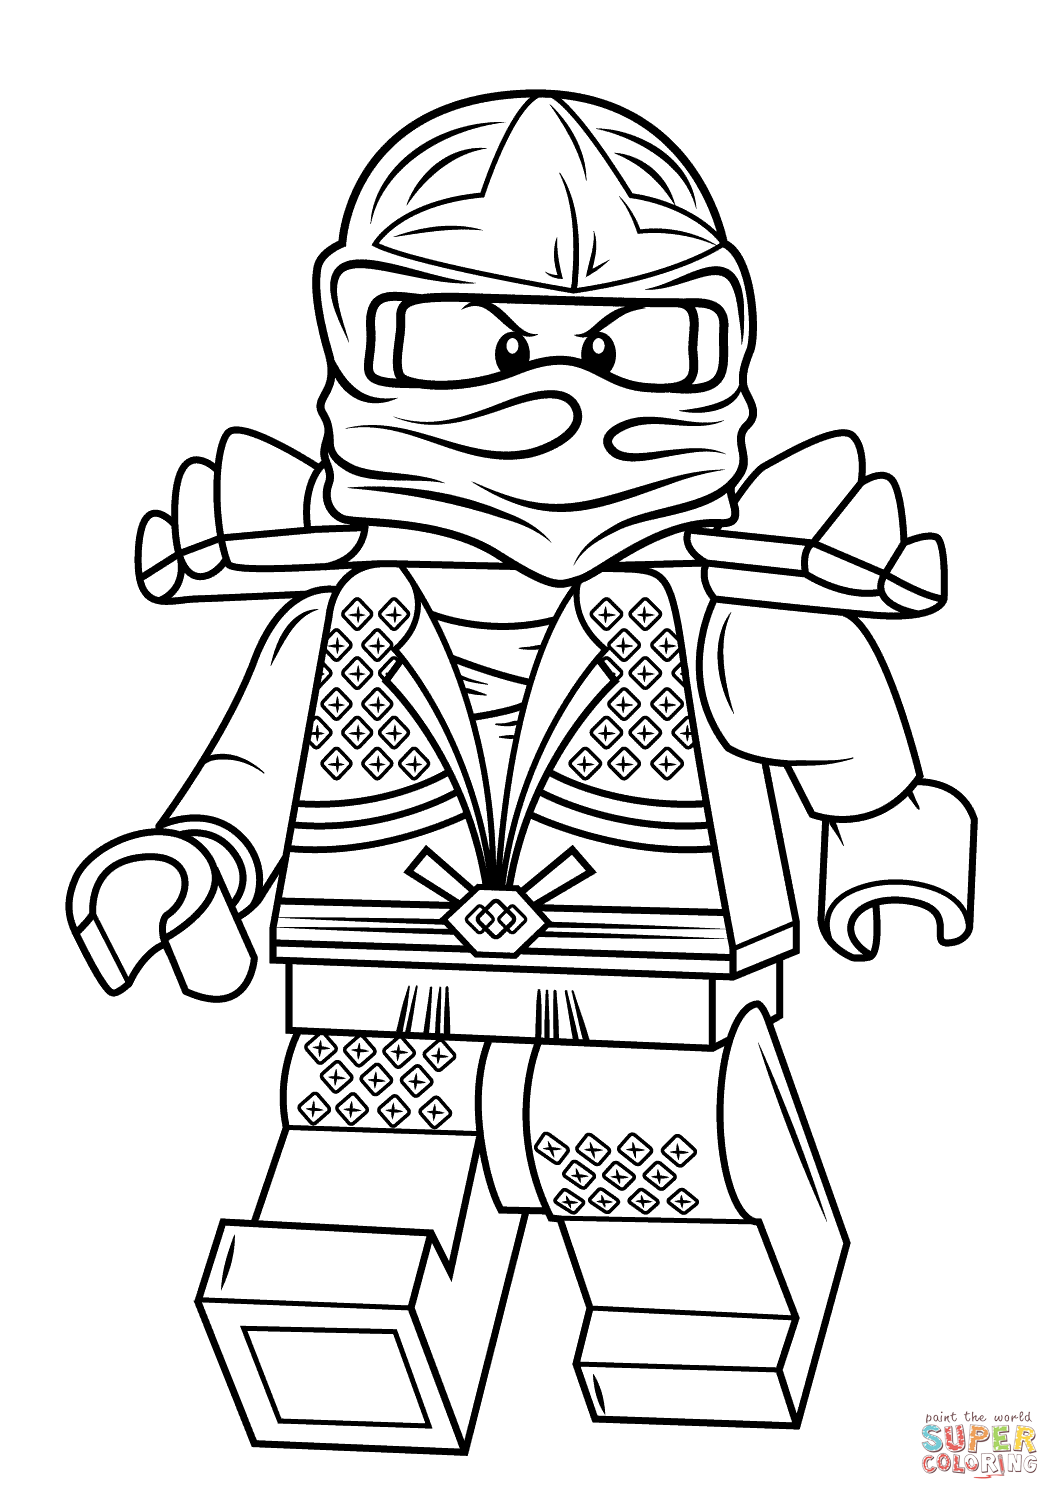 Ninjago Coloring Pages Lloyd Coloring Home Lego Ninjago Colouring Pages To Print